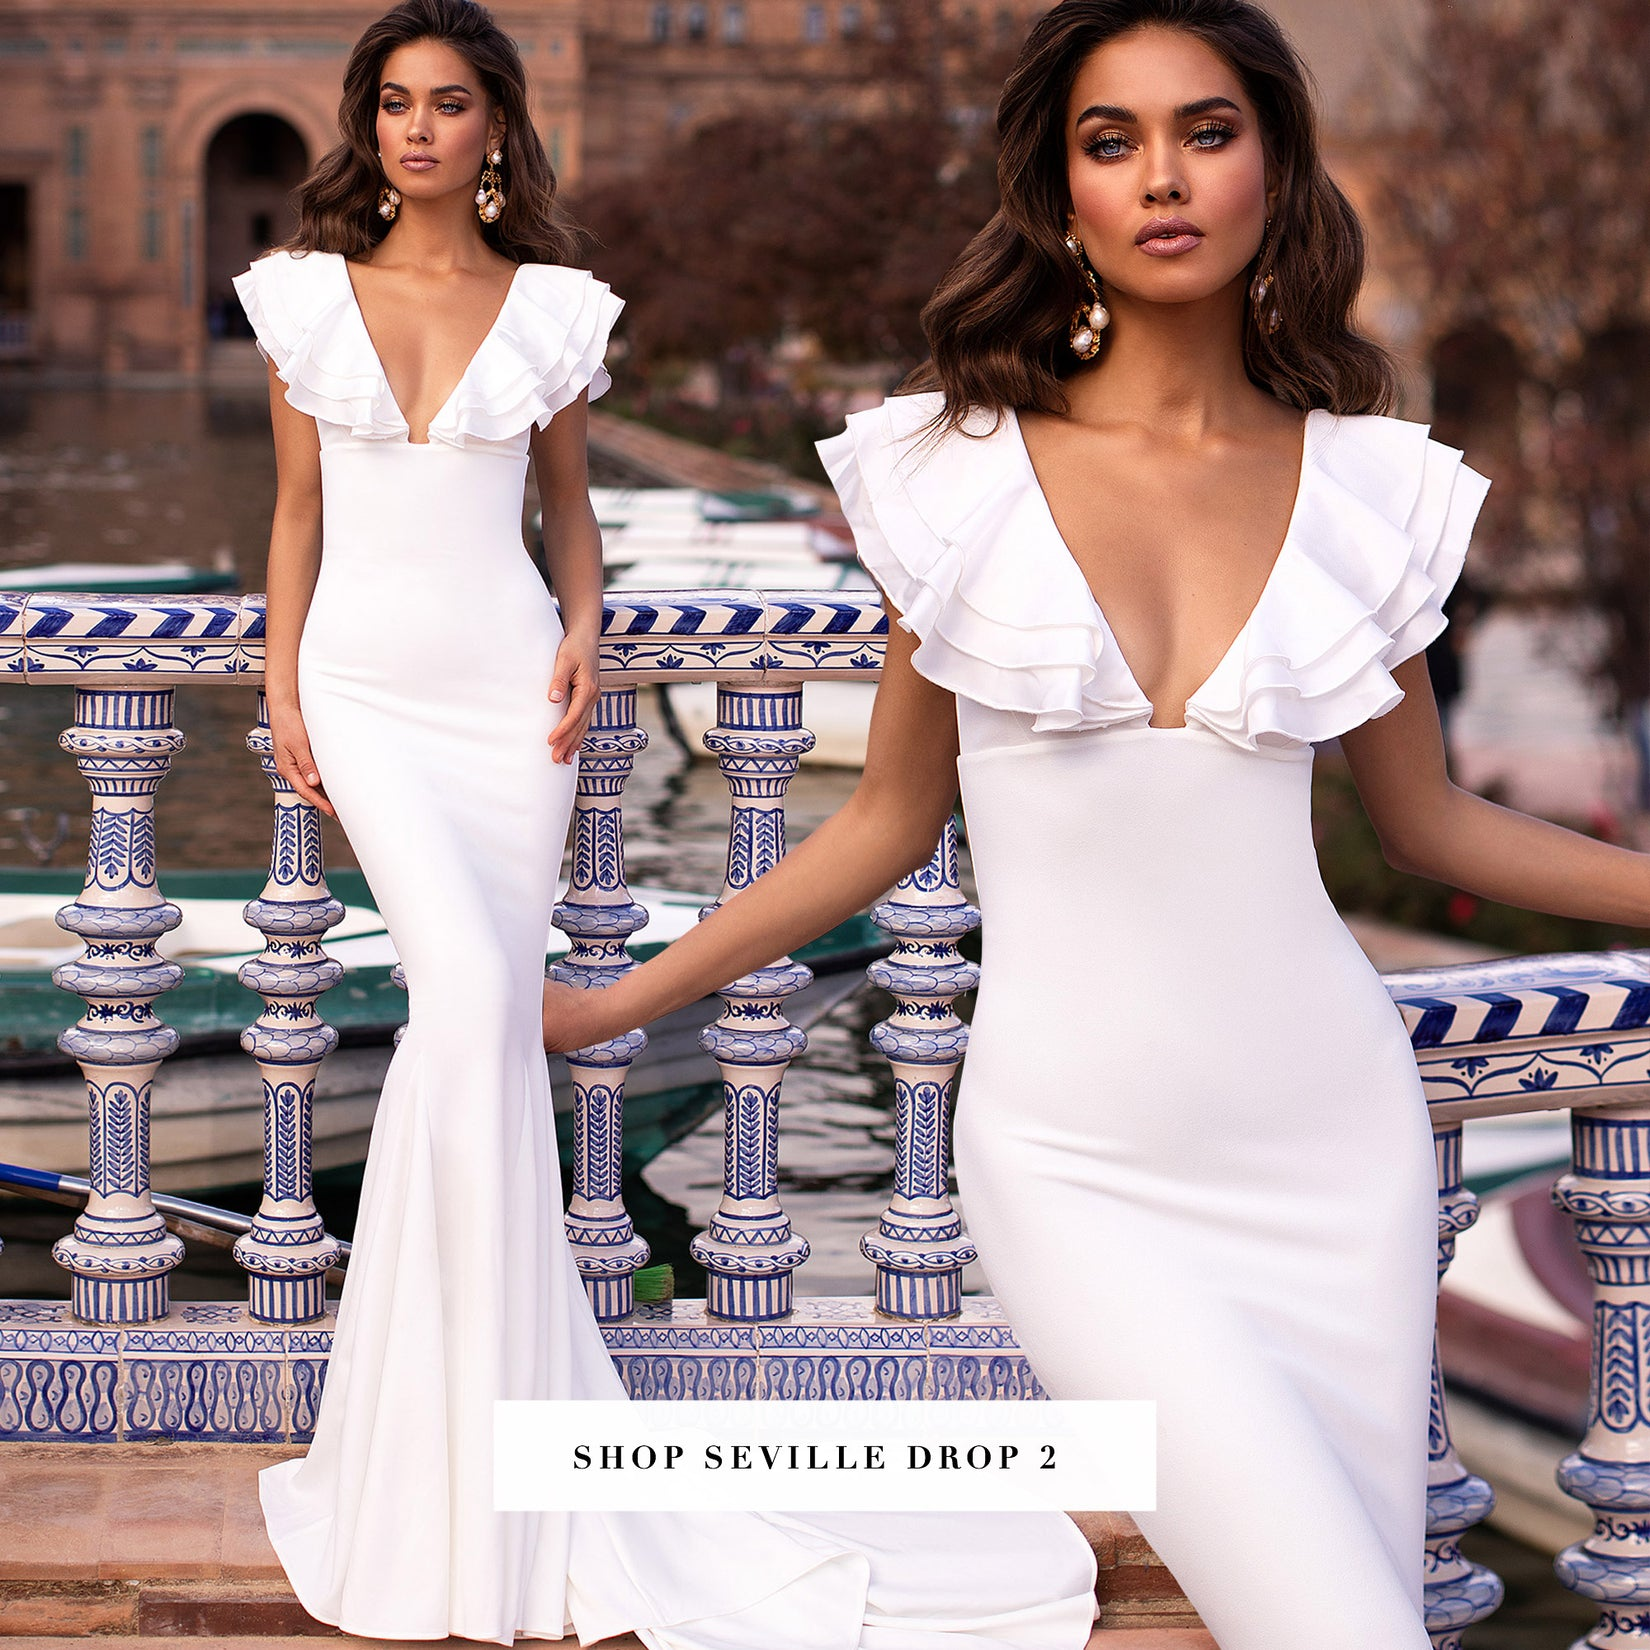 a3d07654a31 It s a beautiful thing when simplicity meets feminine details to create a  timeless look of sophisticated style.